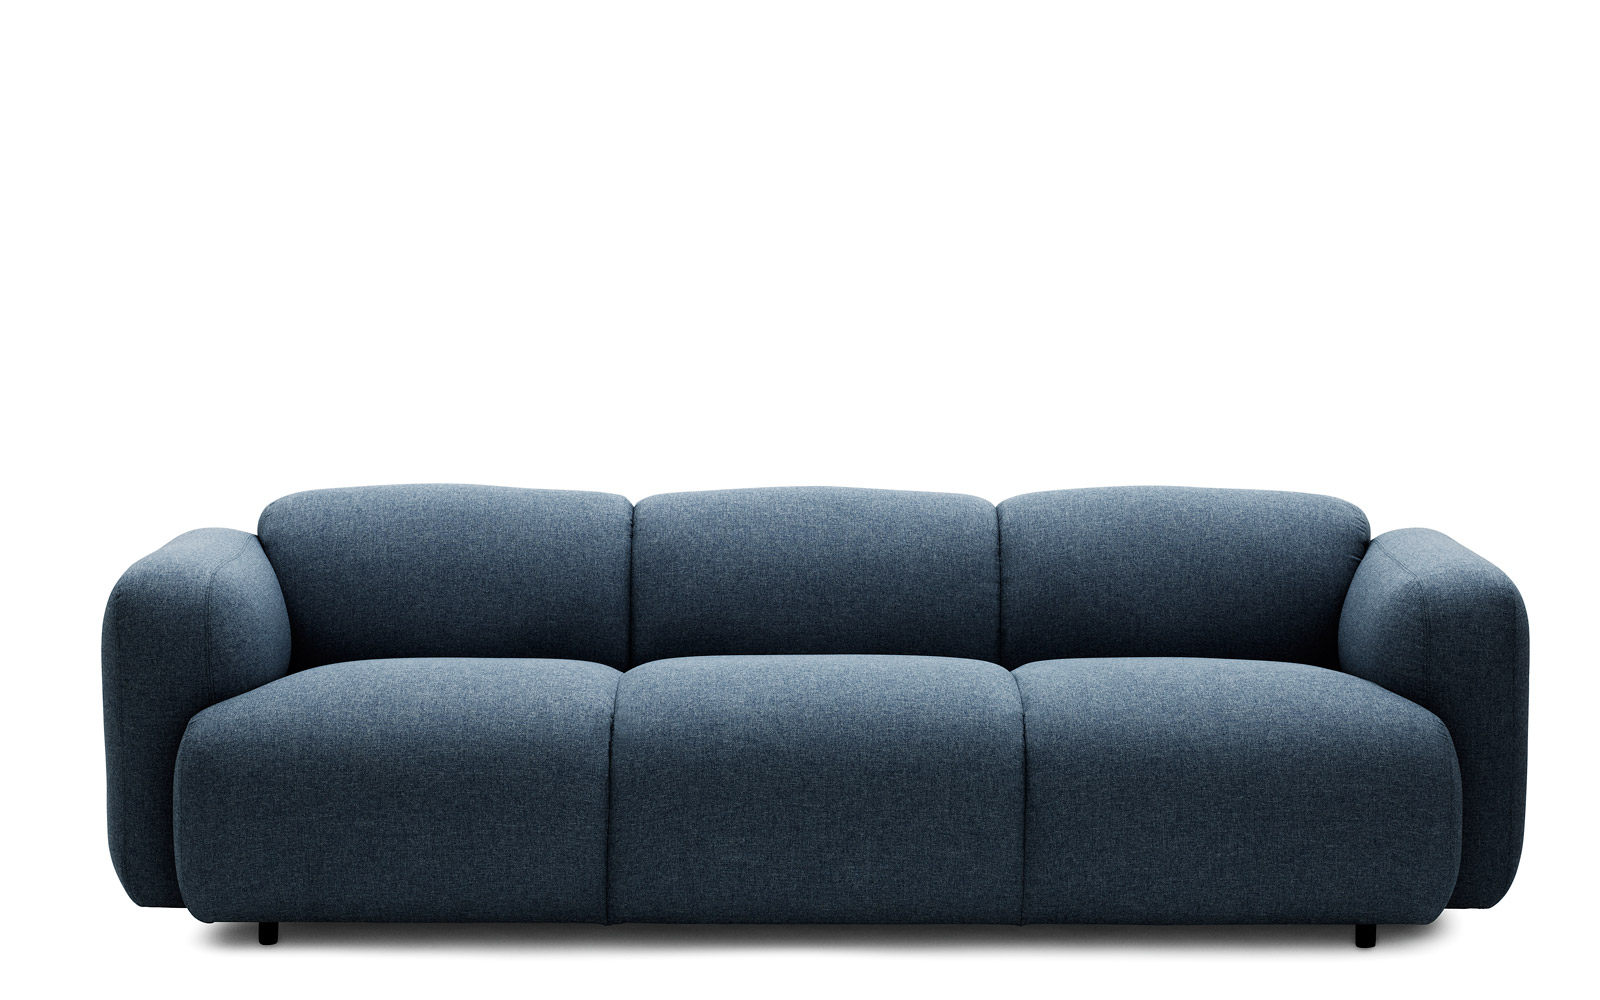 Delicieux Swell Sofa By Normann Copenhagen